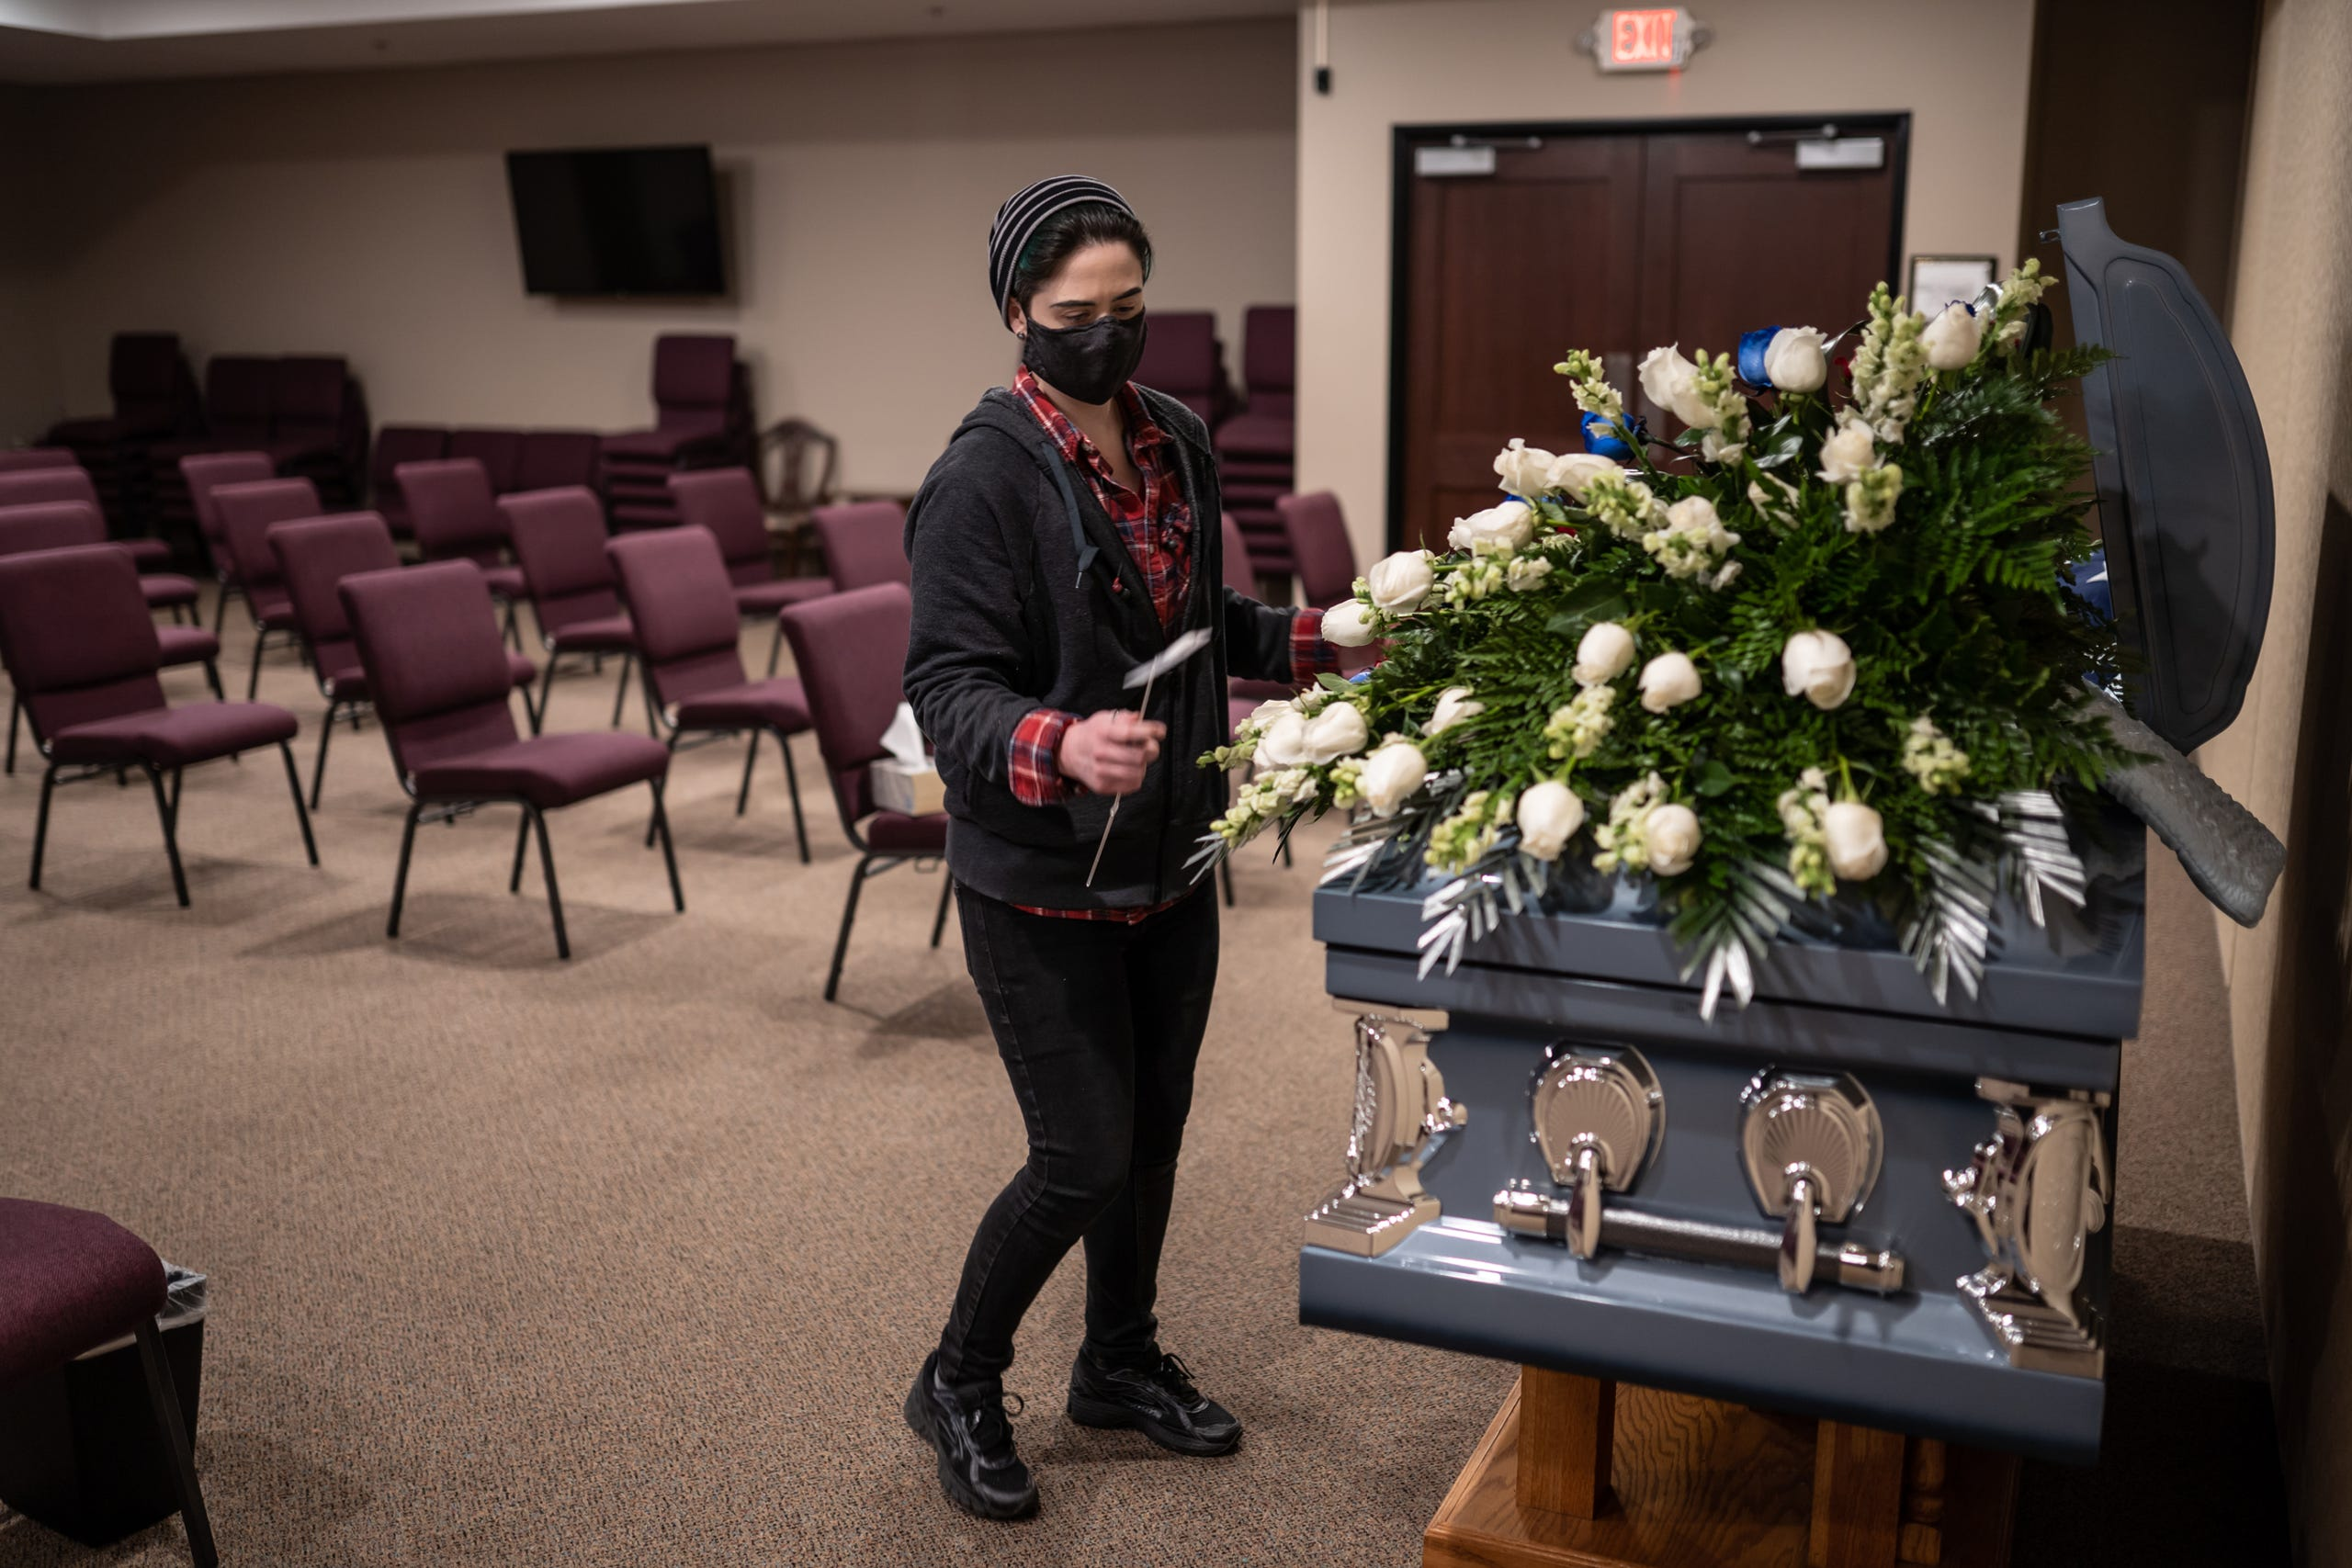 Overwhelmed funeral homes, limited memorials for grieving amid COVID-19